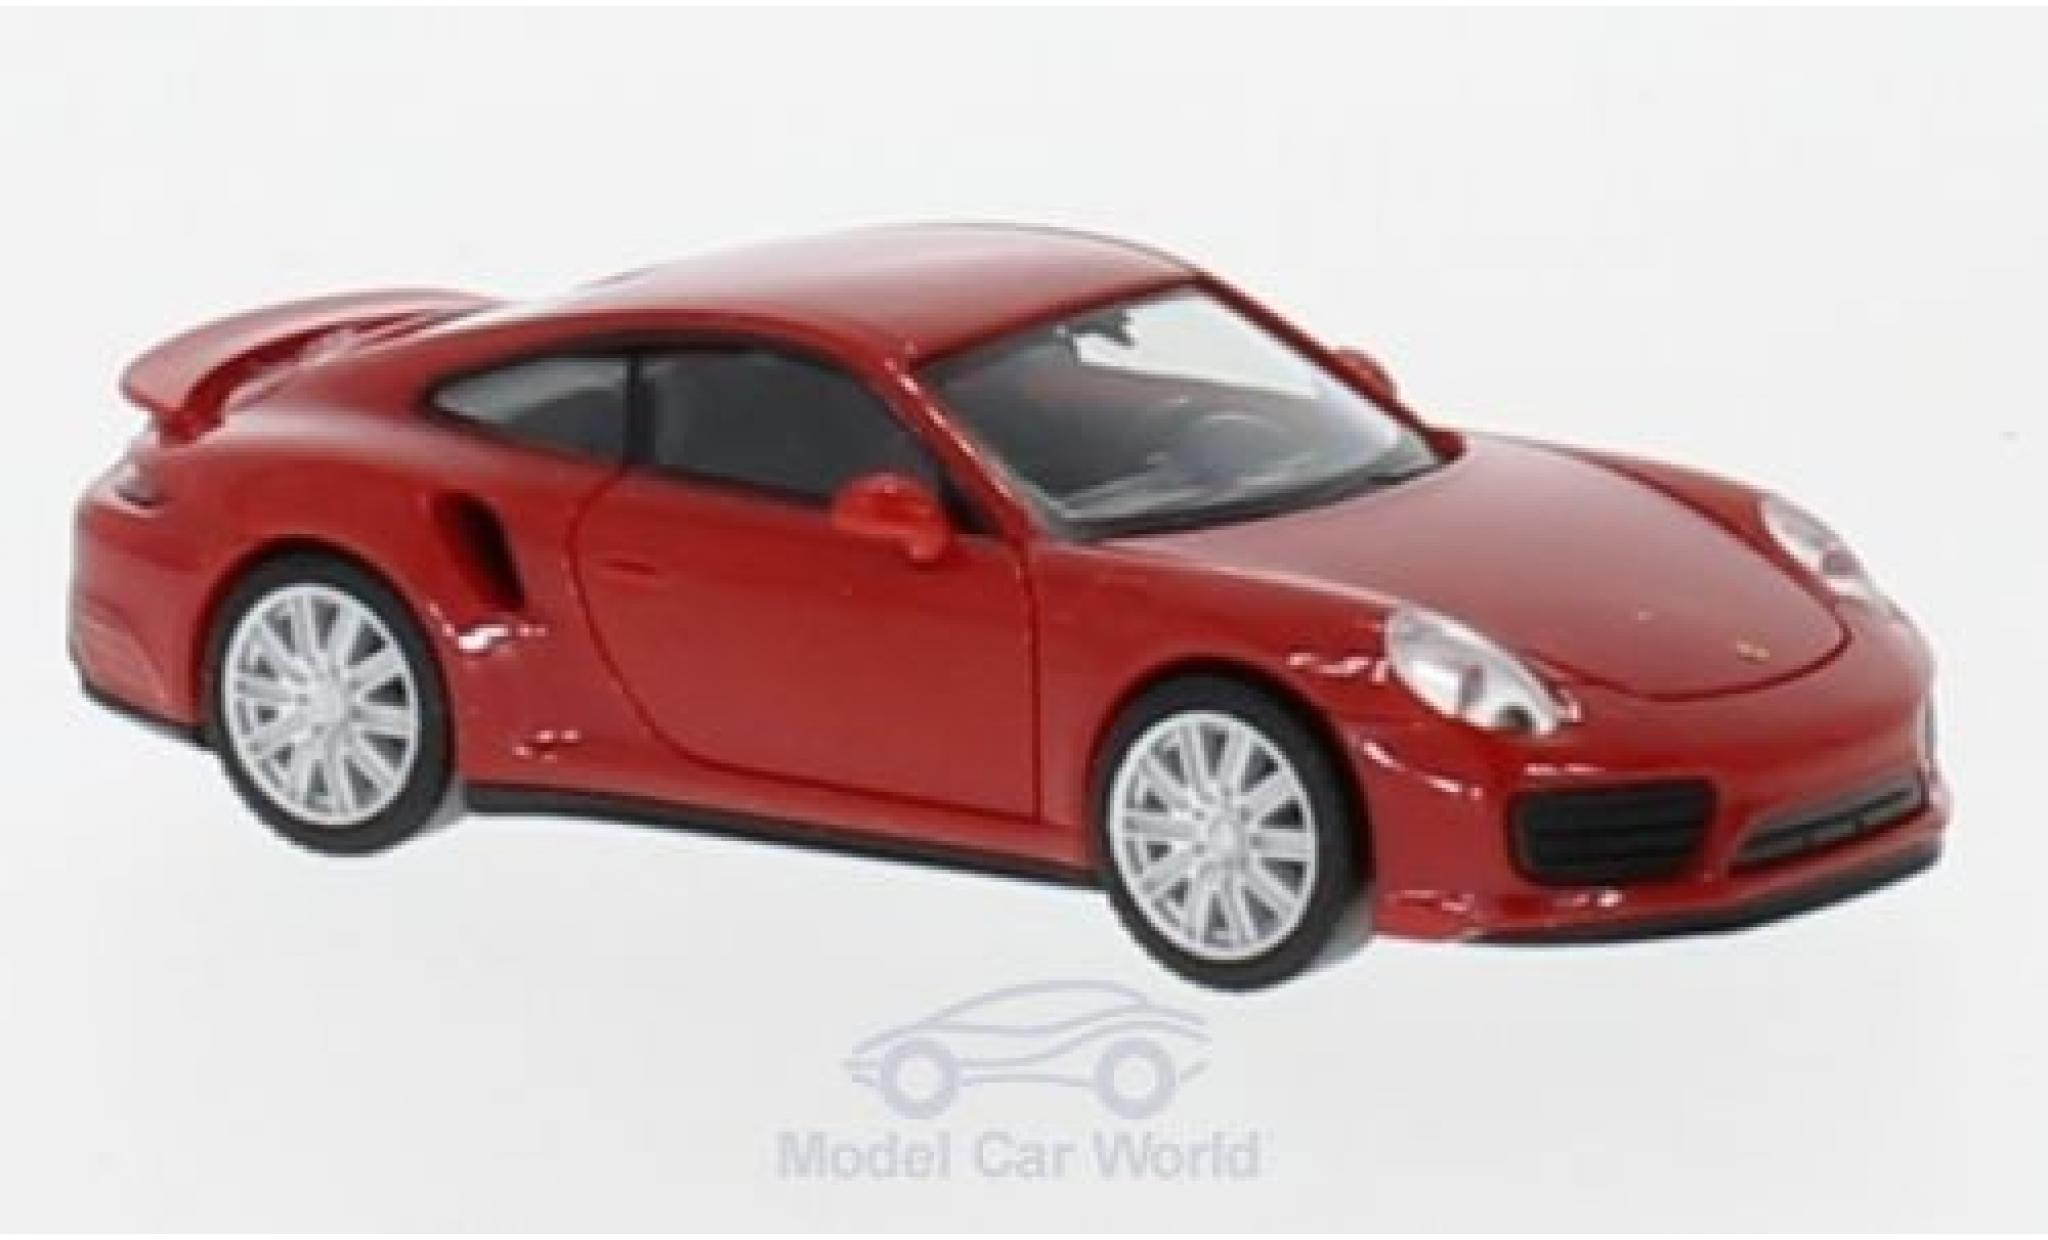 Porsche 911 Turbo 1/87 Herpa Turbo red